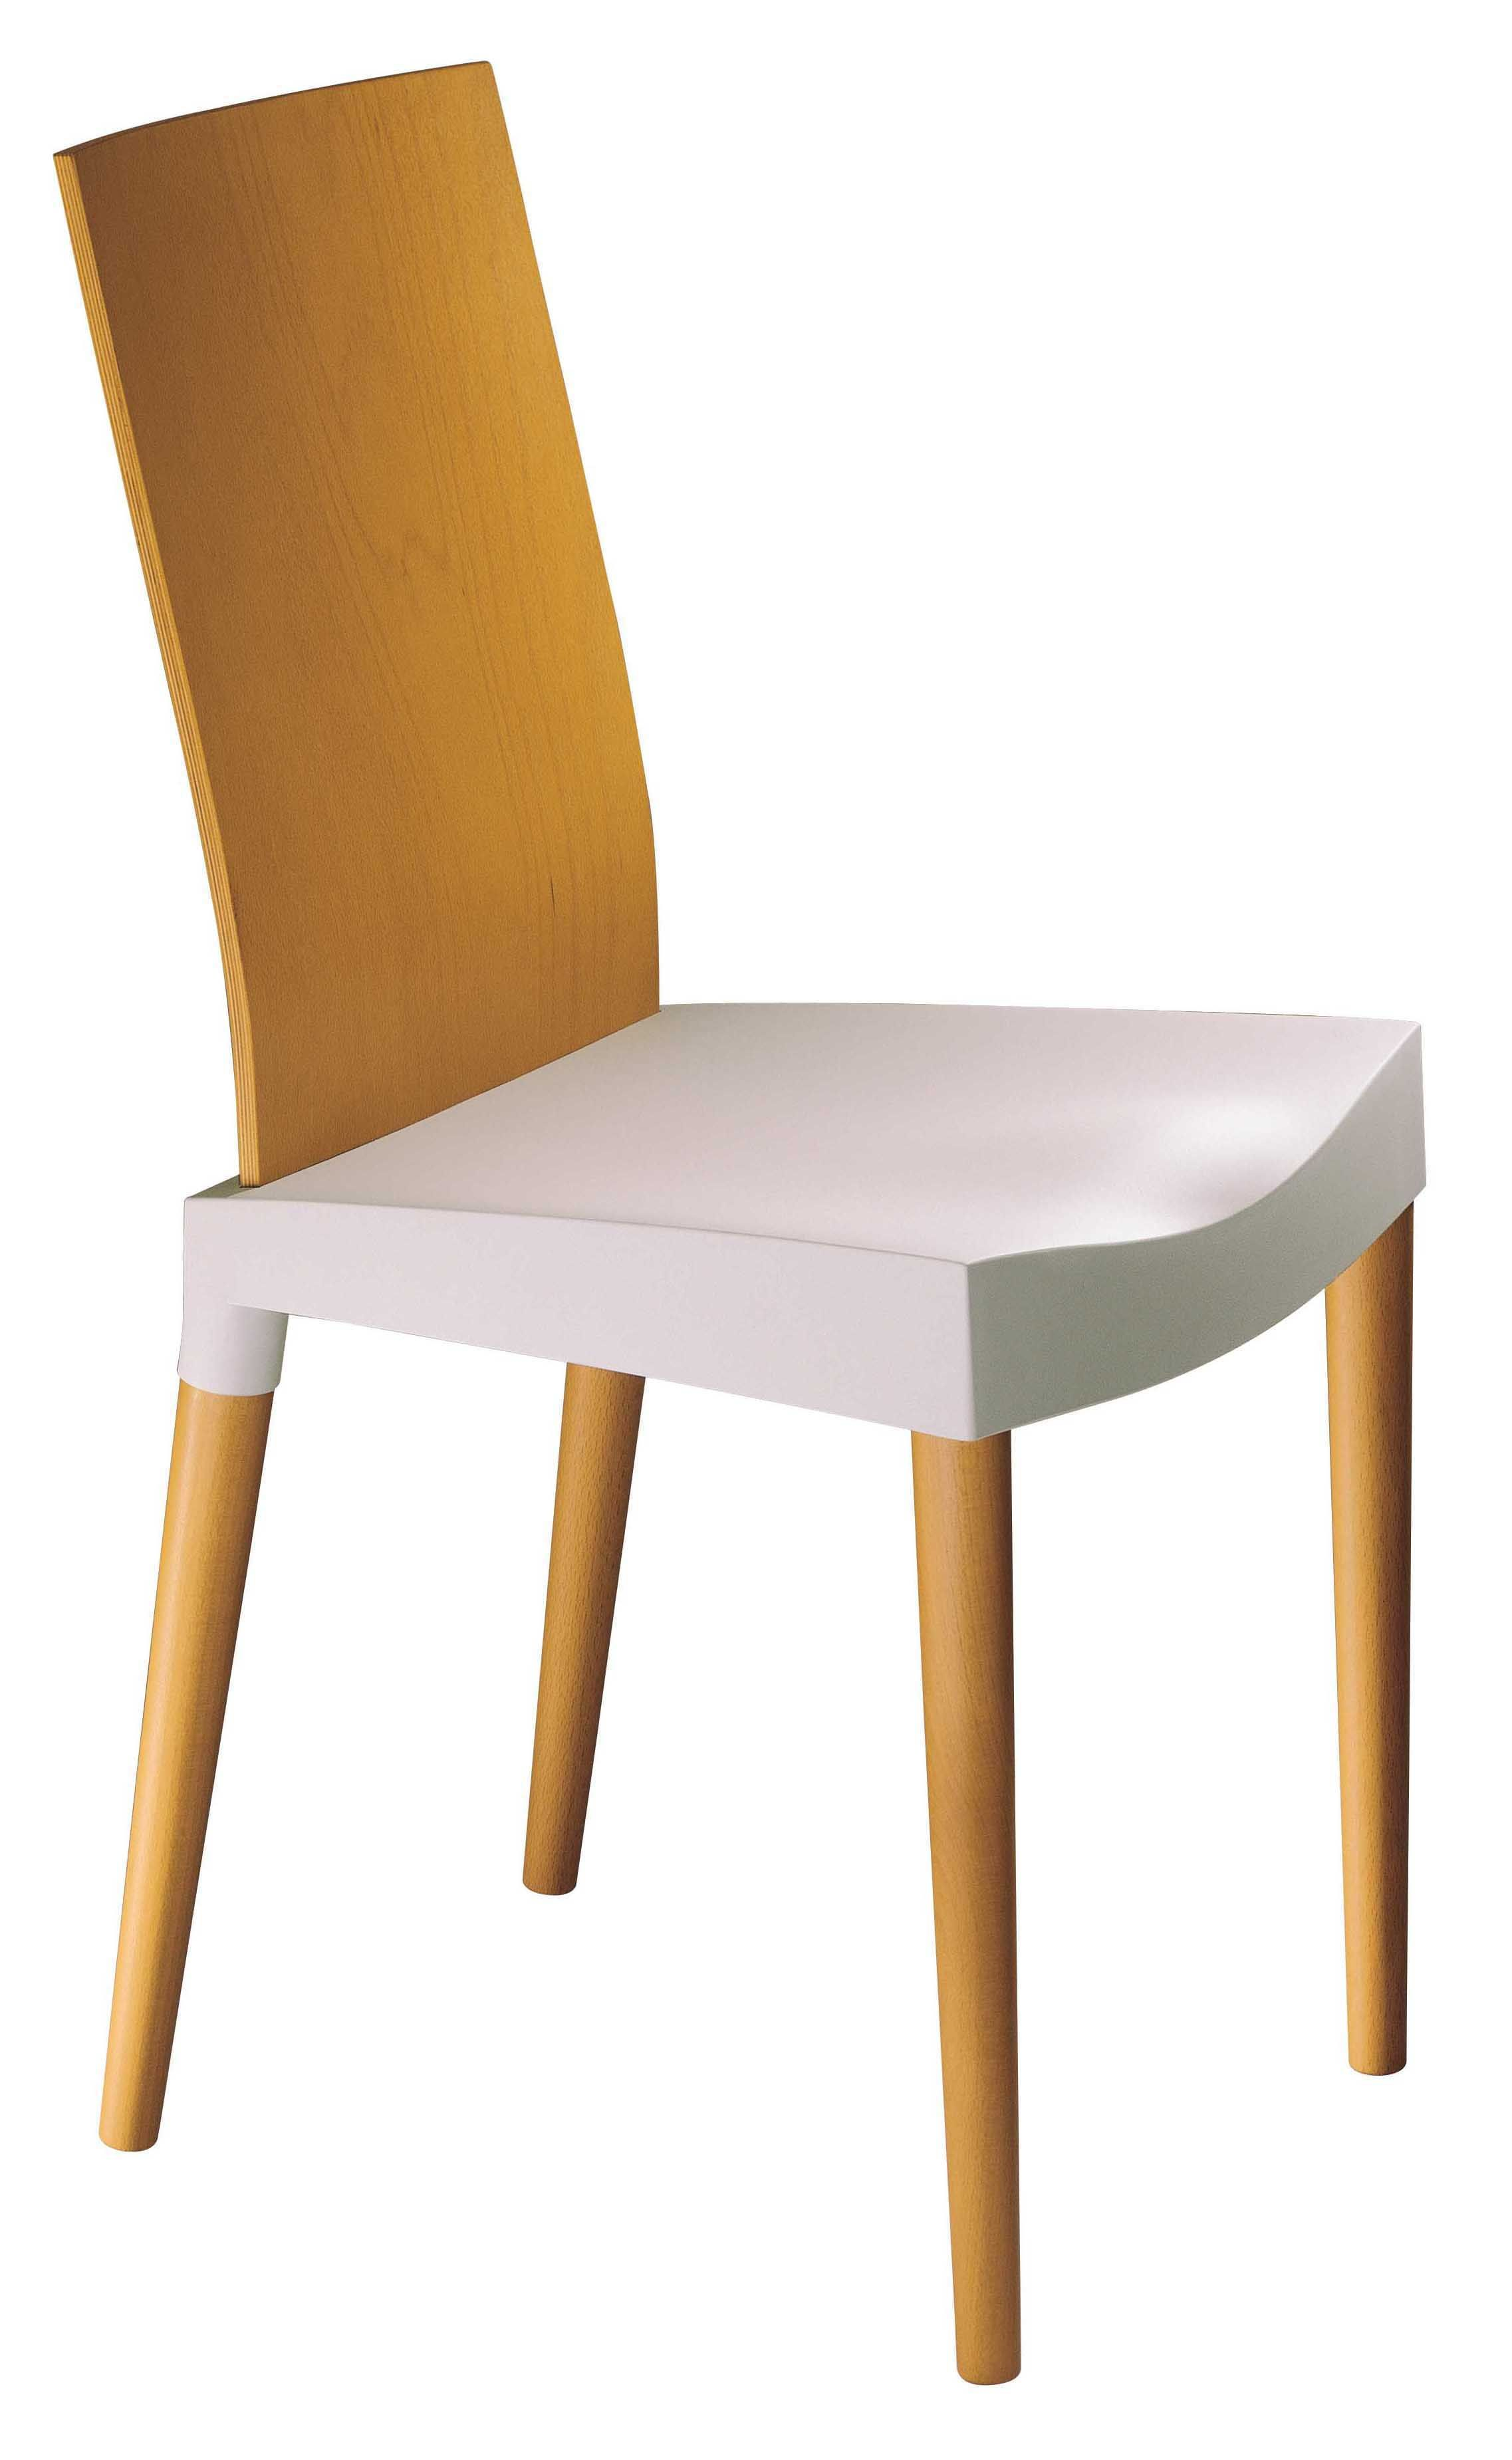 design chair kartell best buy desk chairs miss trip ivory natural beech by